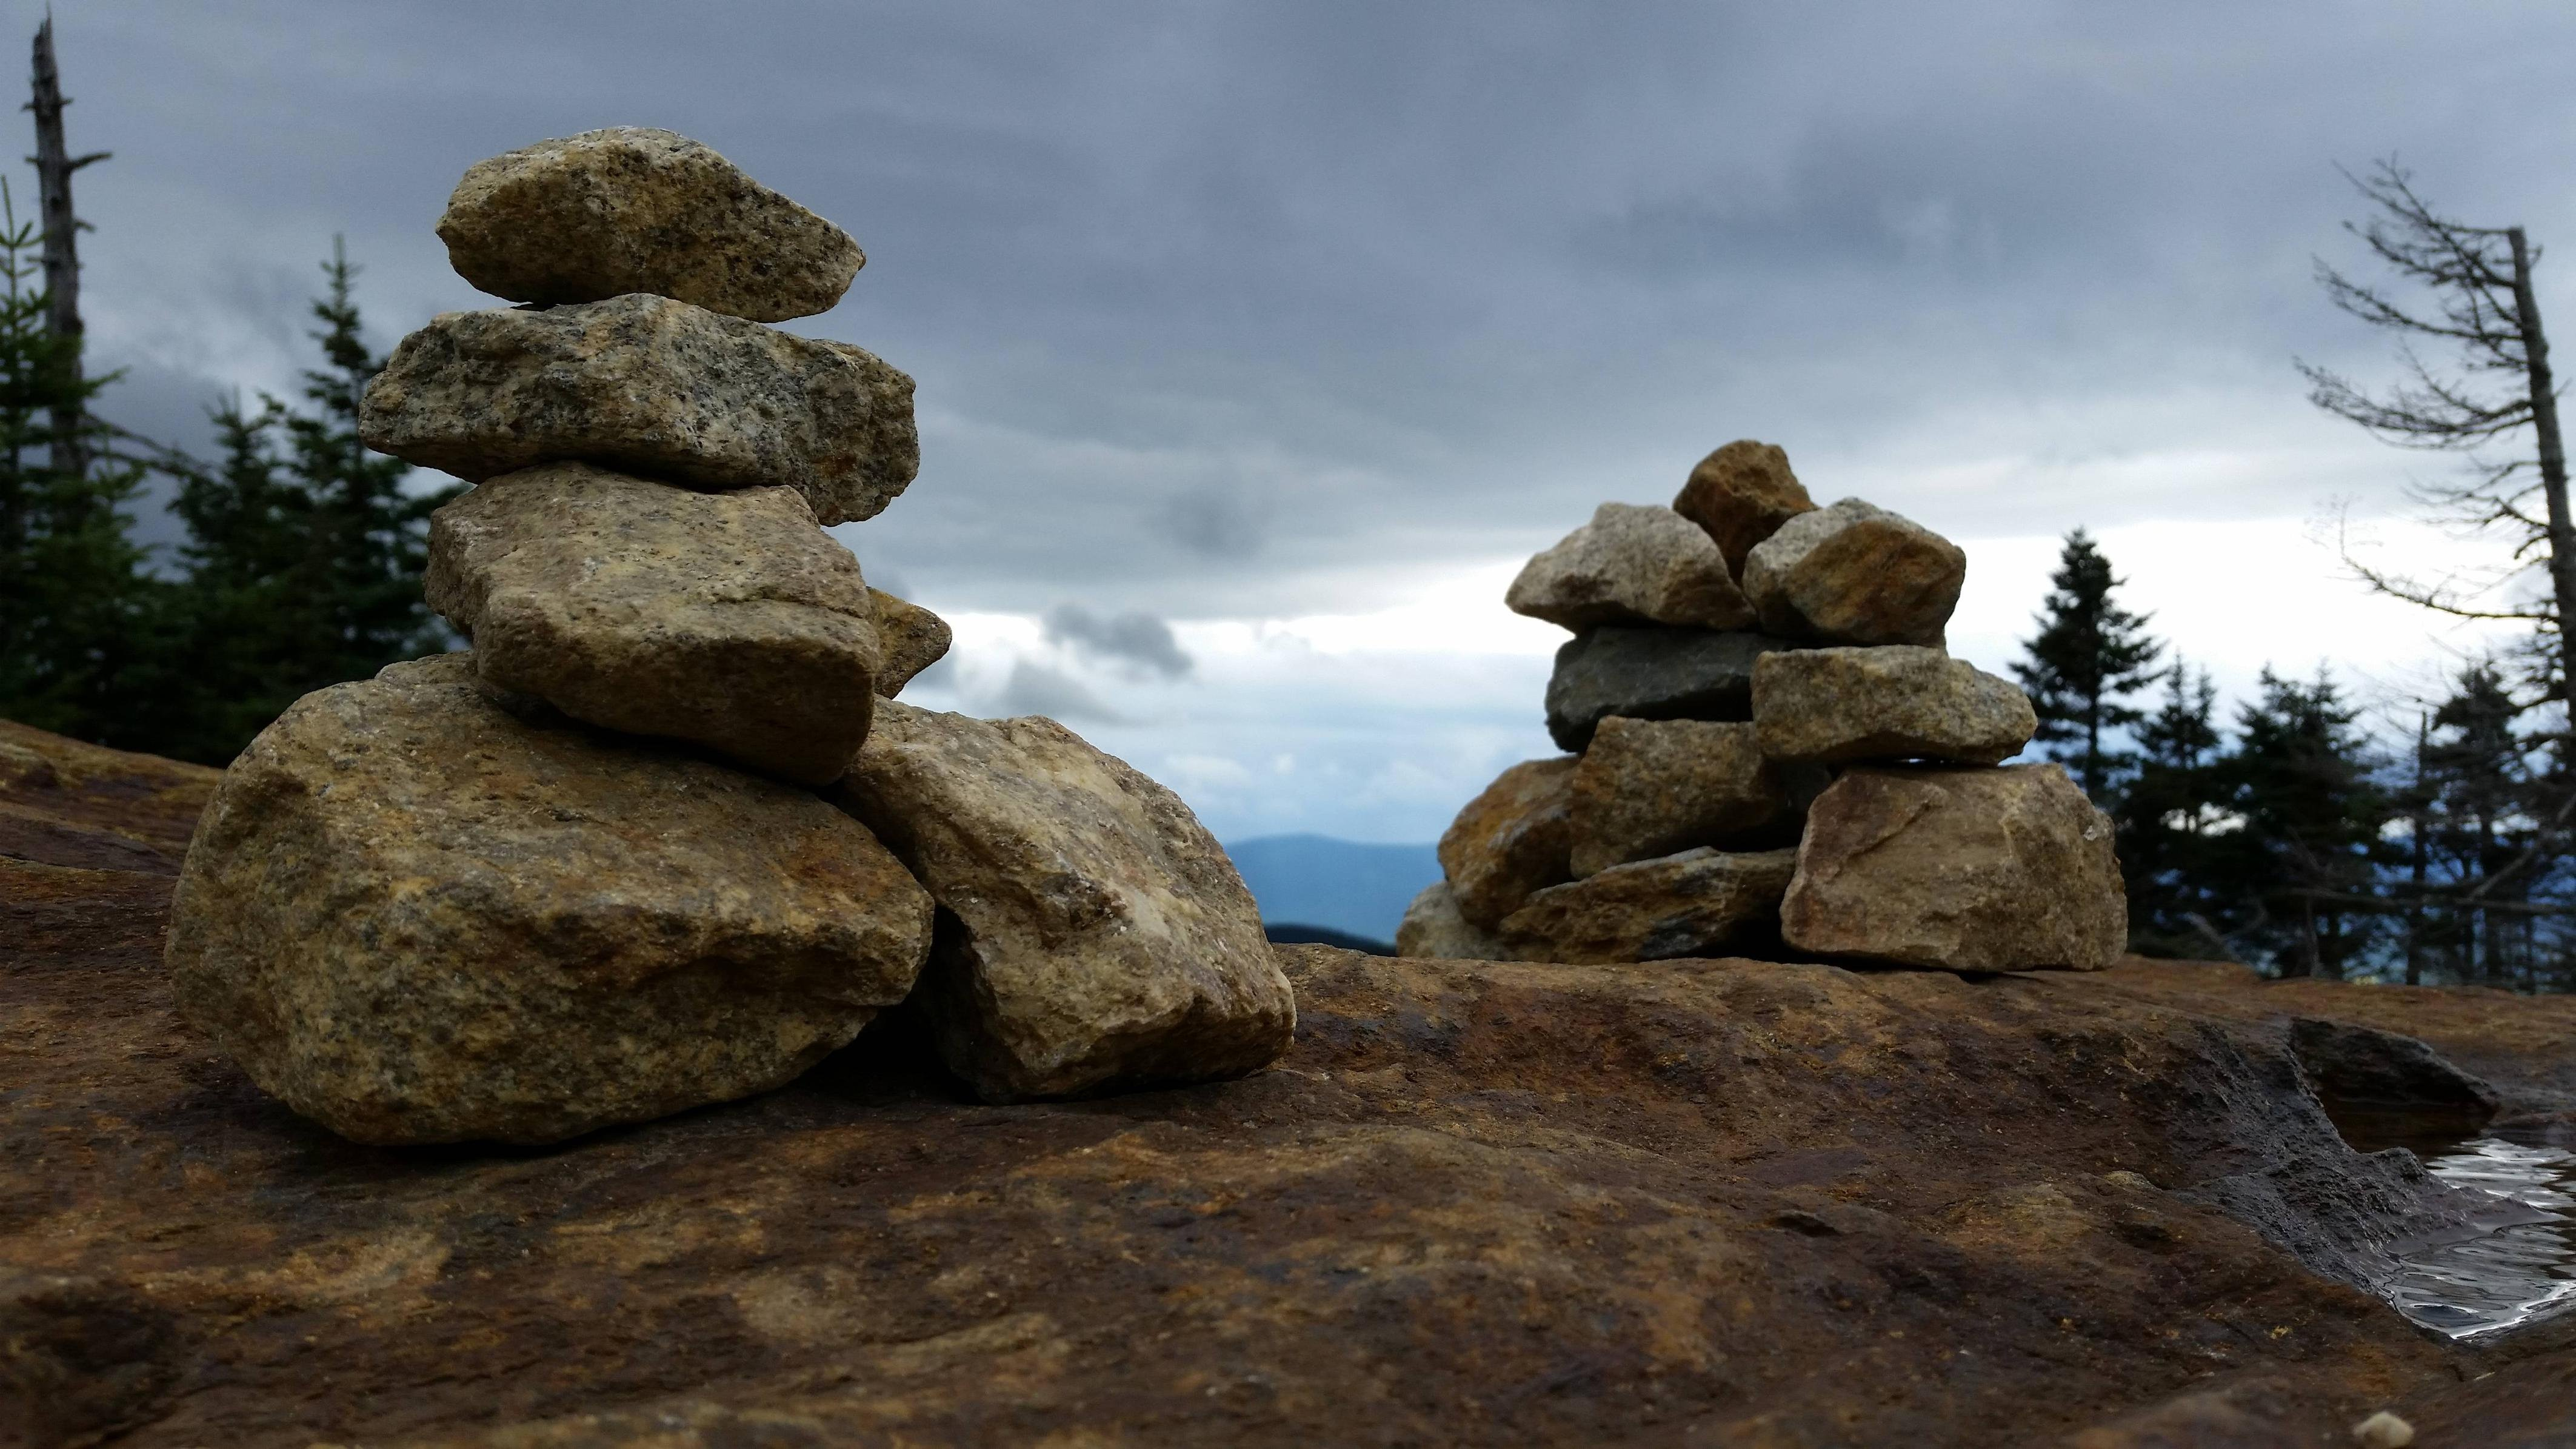 rocks wallpapers, photos and desktop backgrounds up to 8K ...